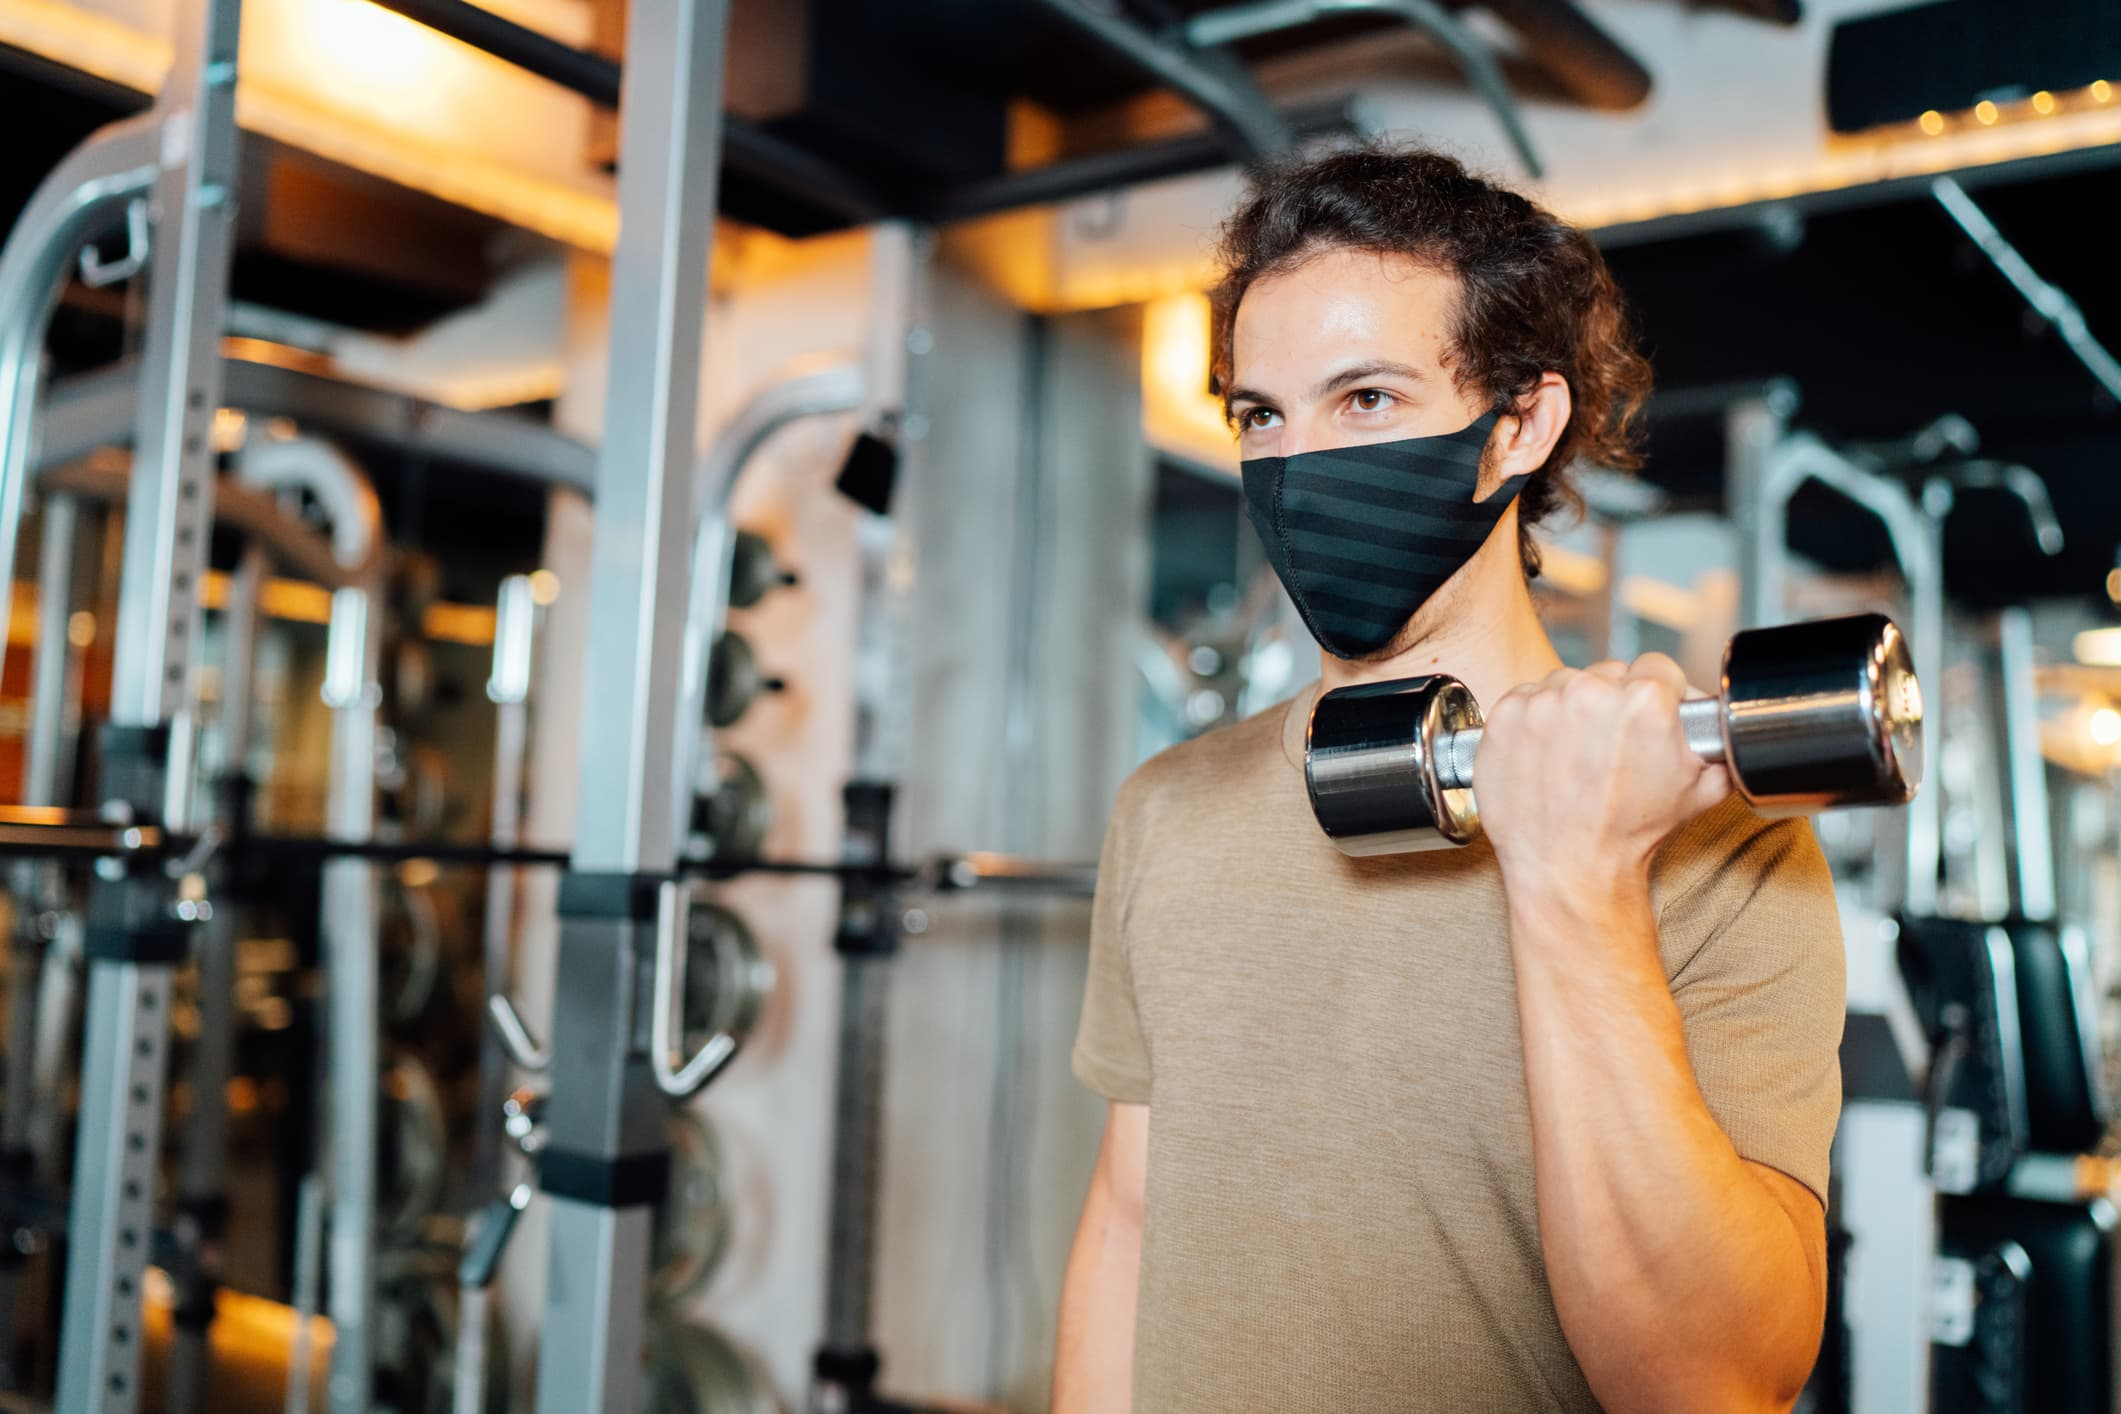 How to stay safe at the gym during coronavirus